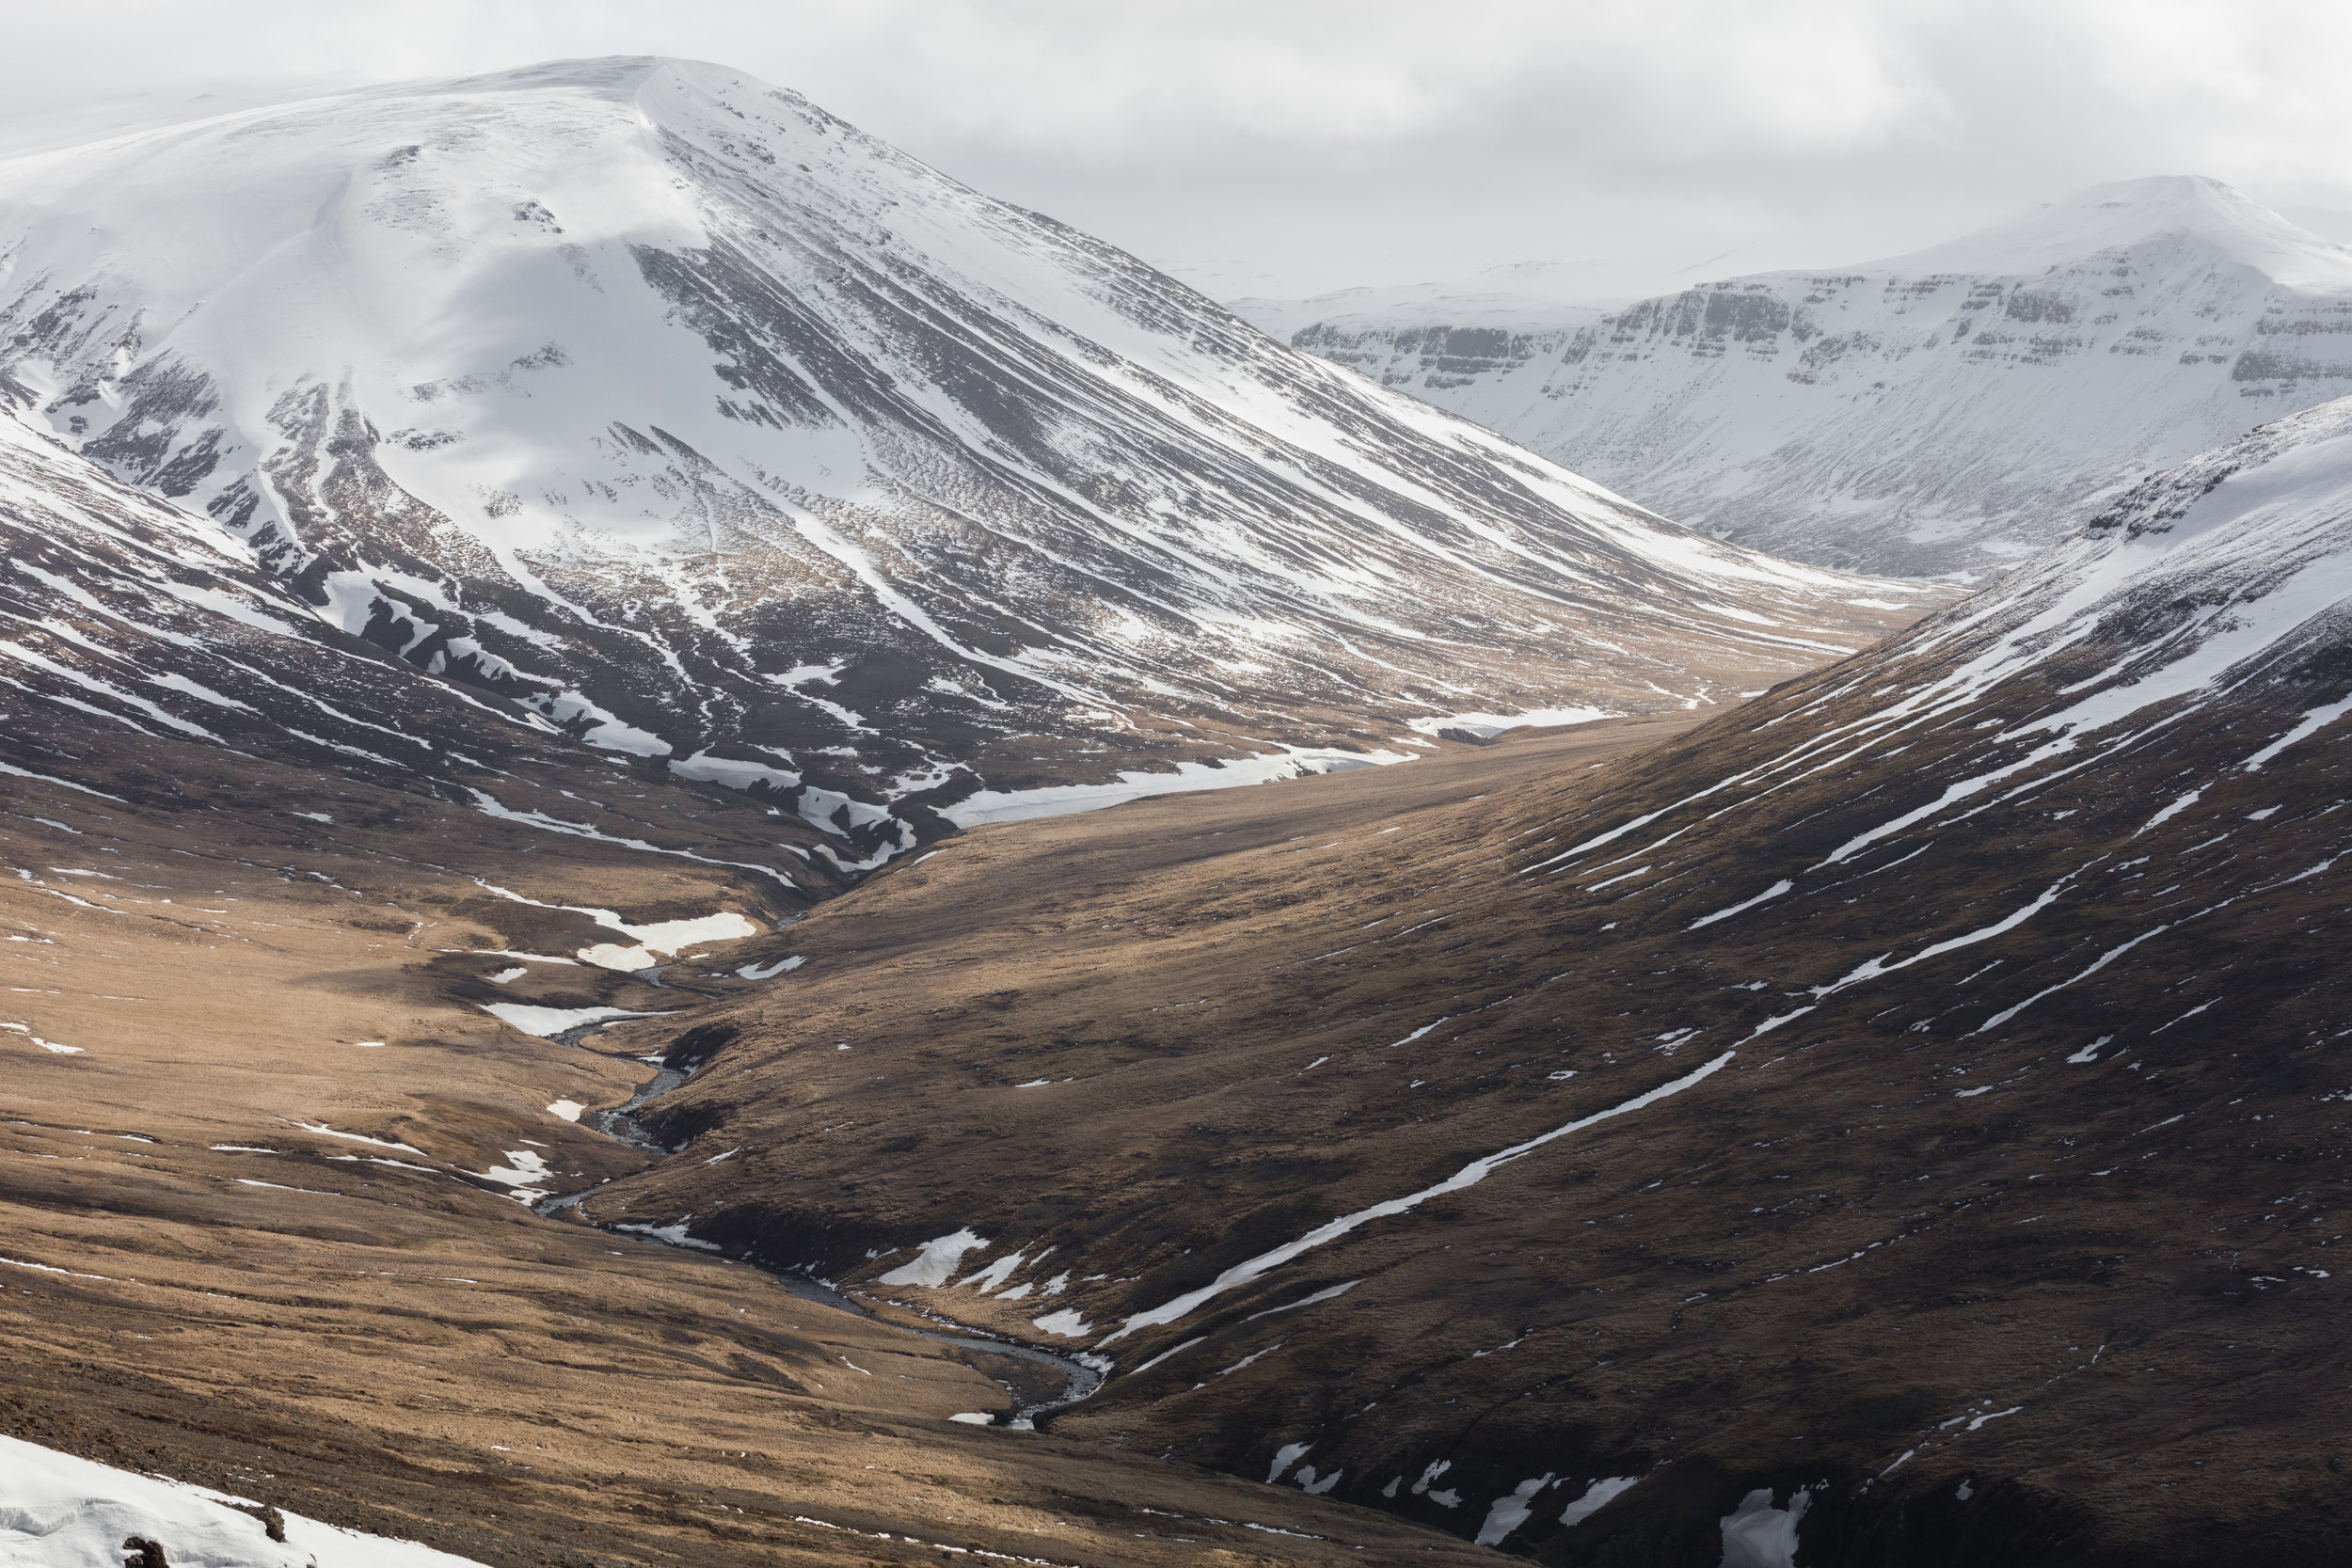 Icelandic+Mountain+Valleys+|+The+Fox+Plateau+-+Faune.jpg